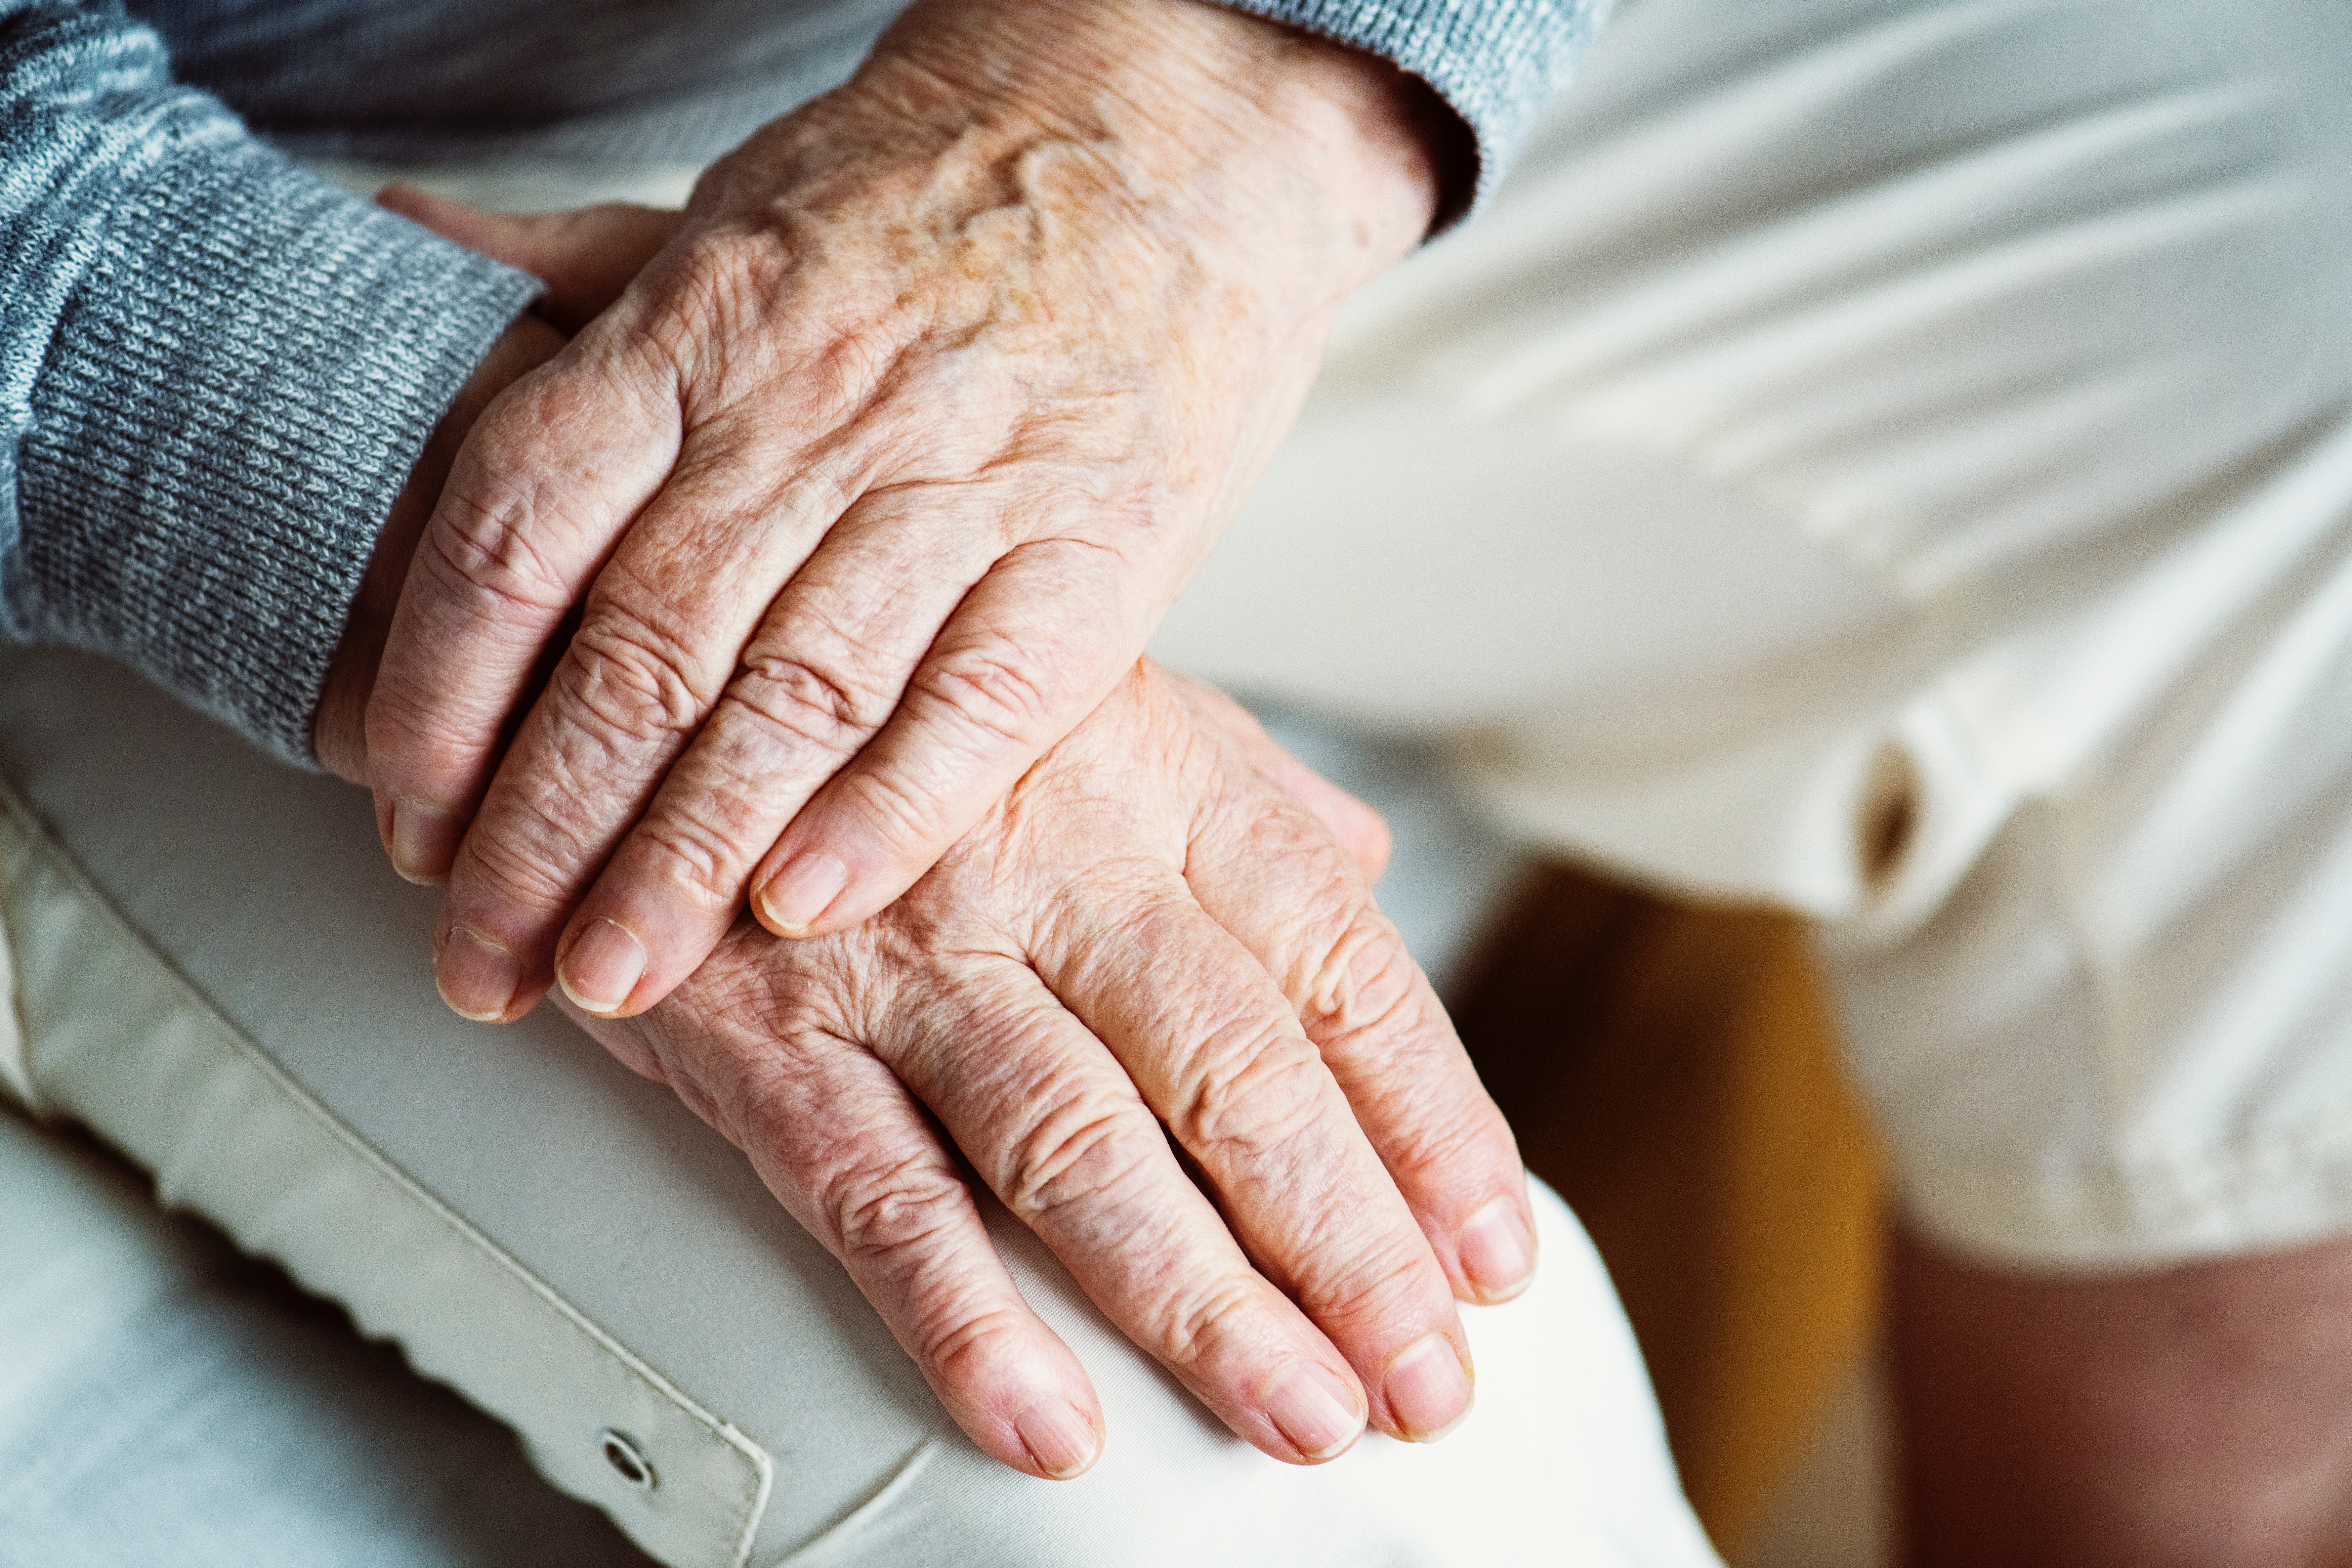 Detail of older person's hands